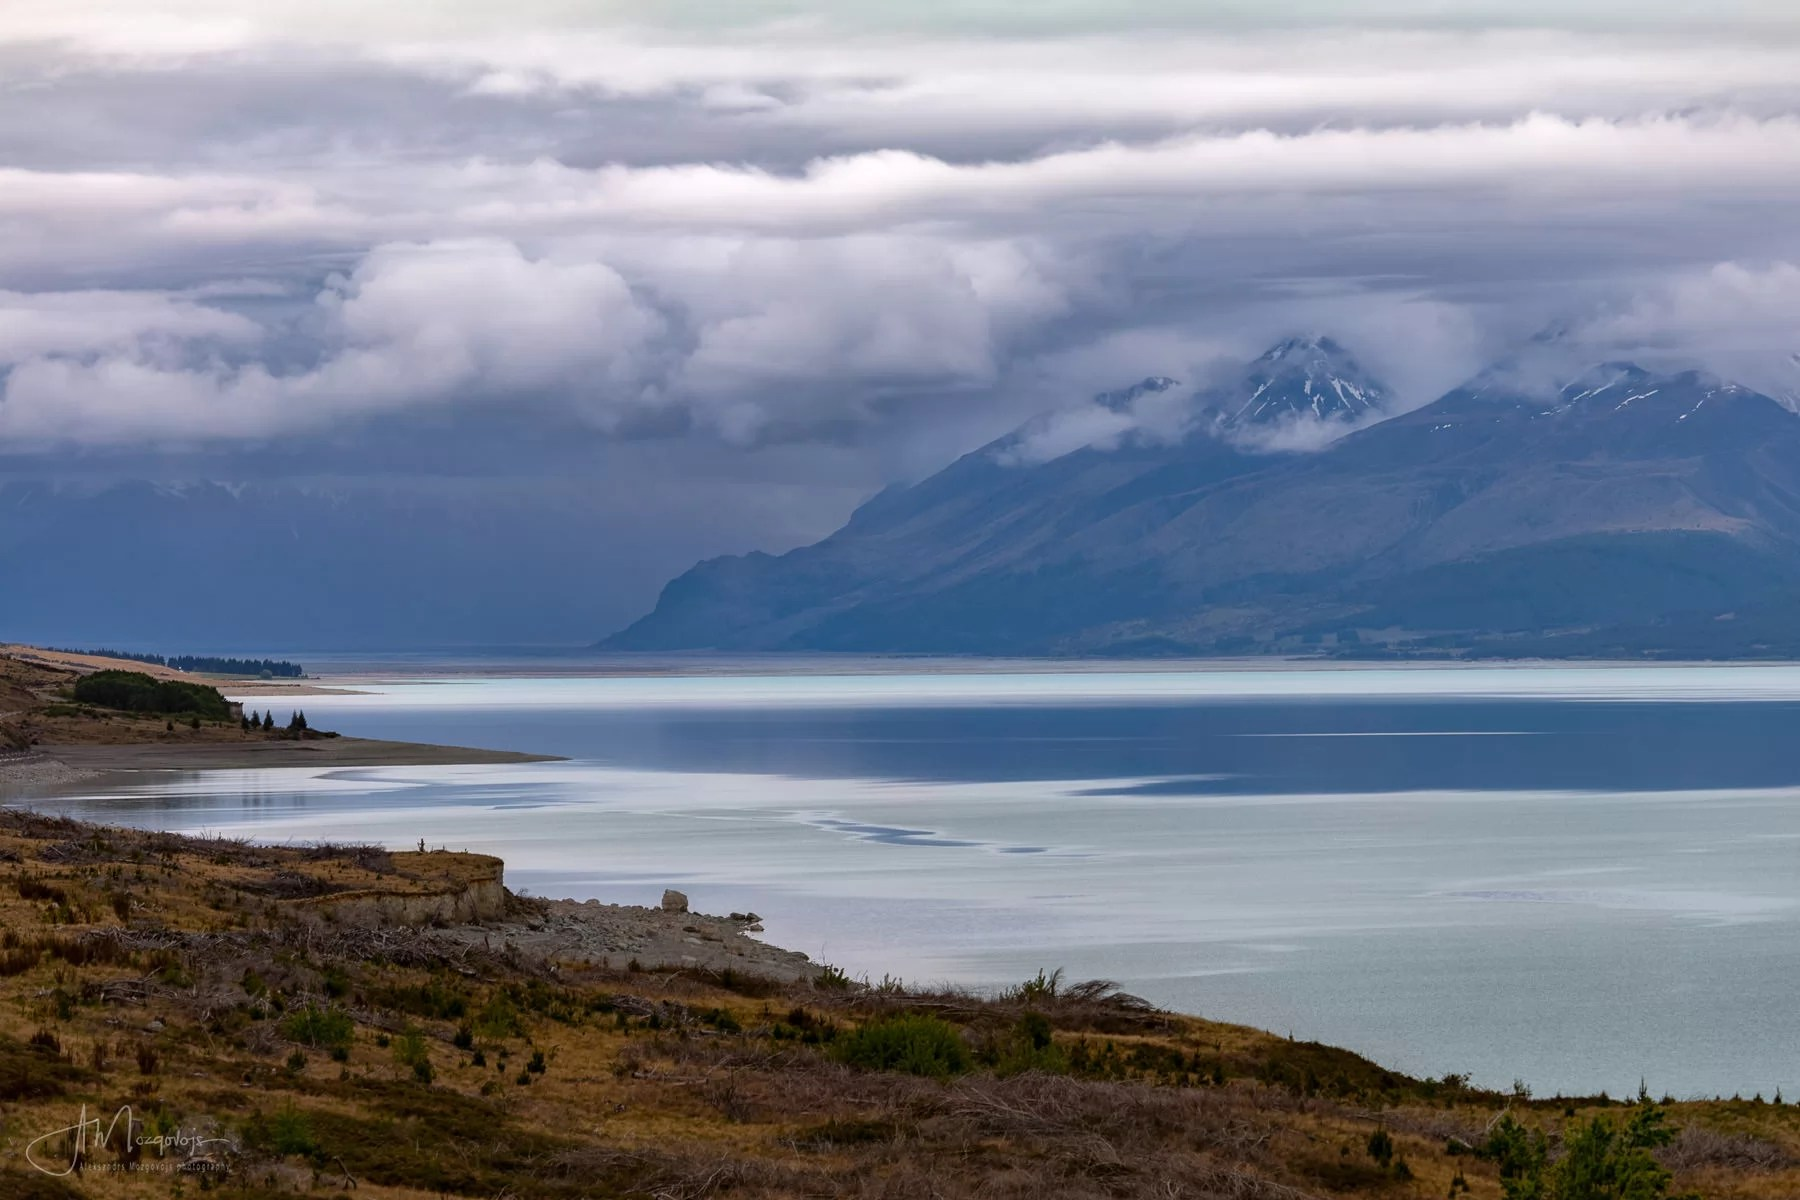 Lake Pukaki under the moody skies